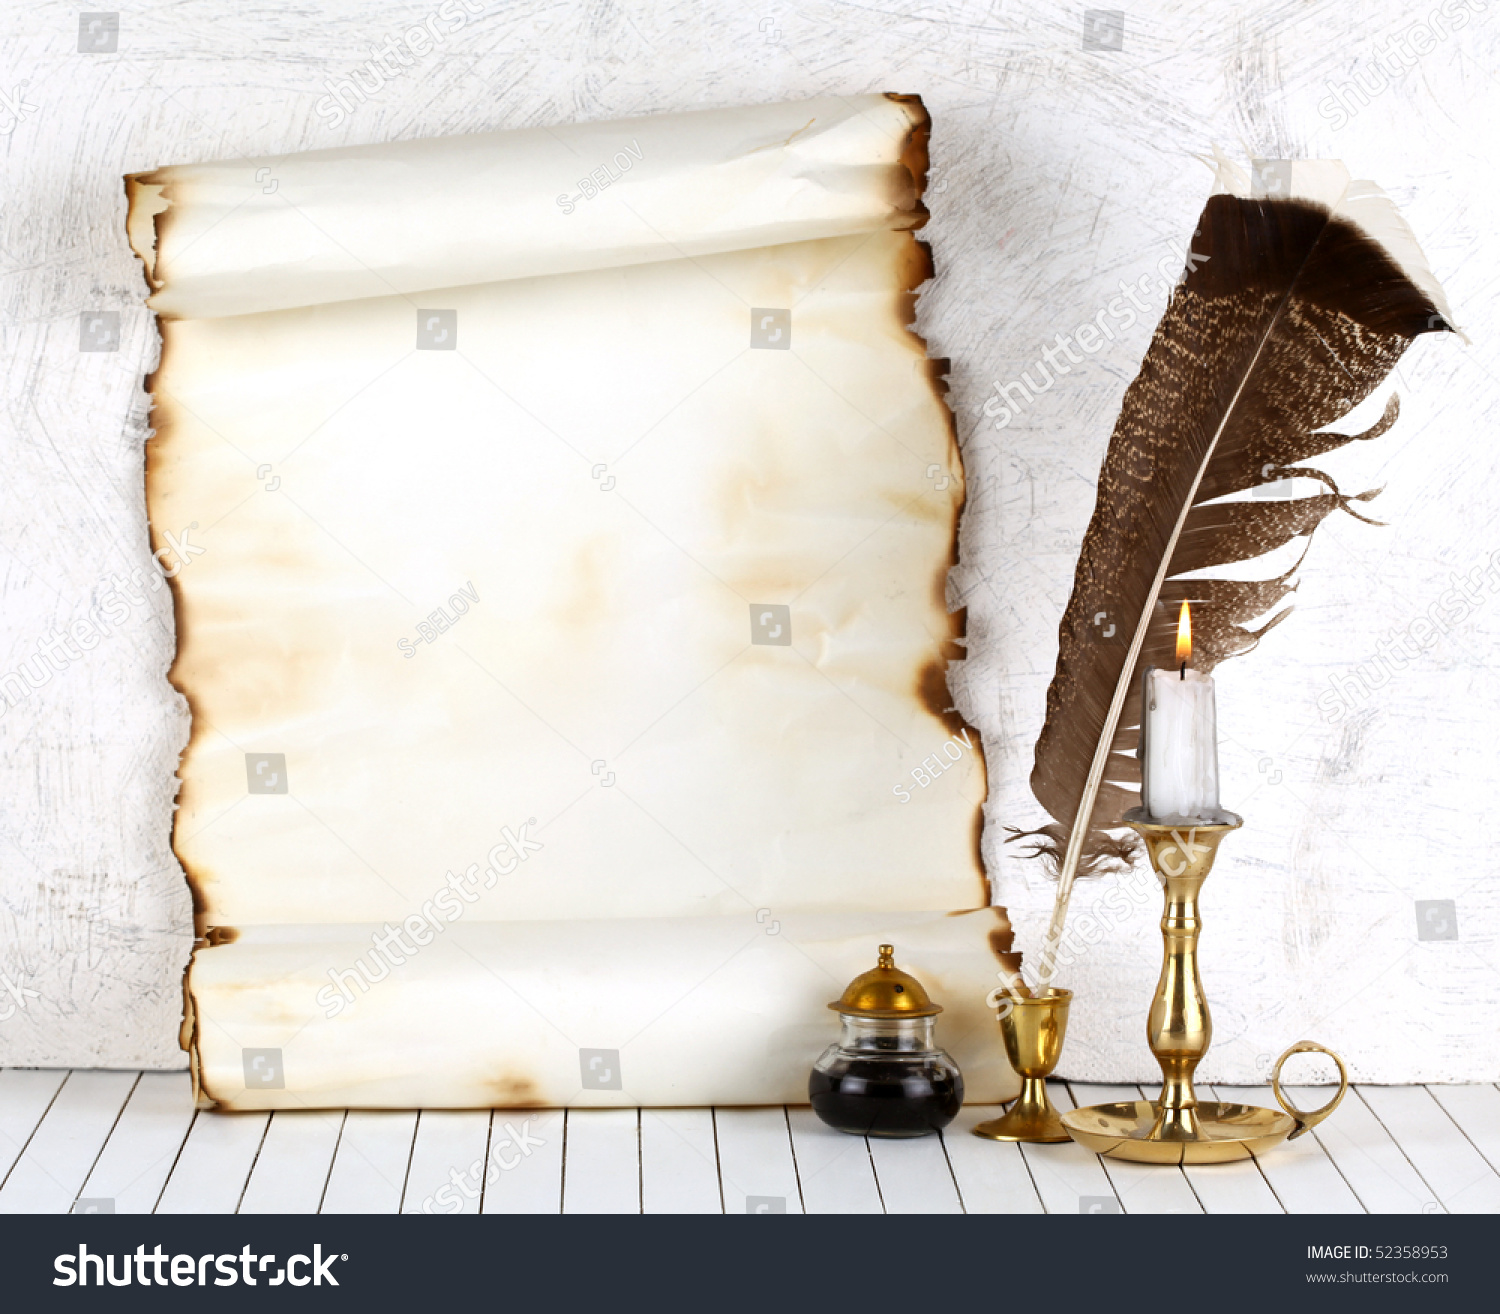 Old Paper Candle Quill Pen White Stock Photo 52358953 ...